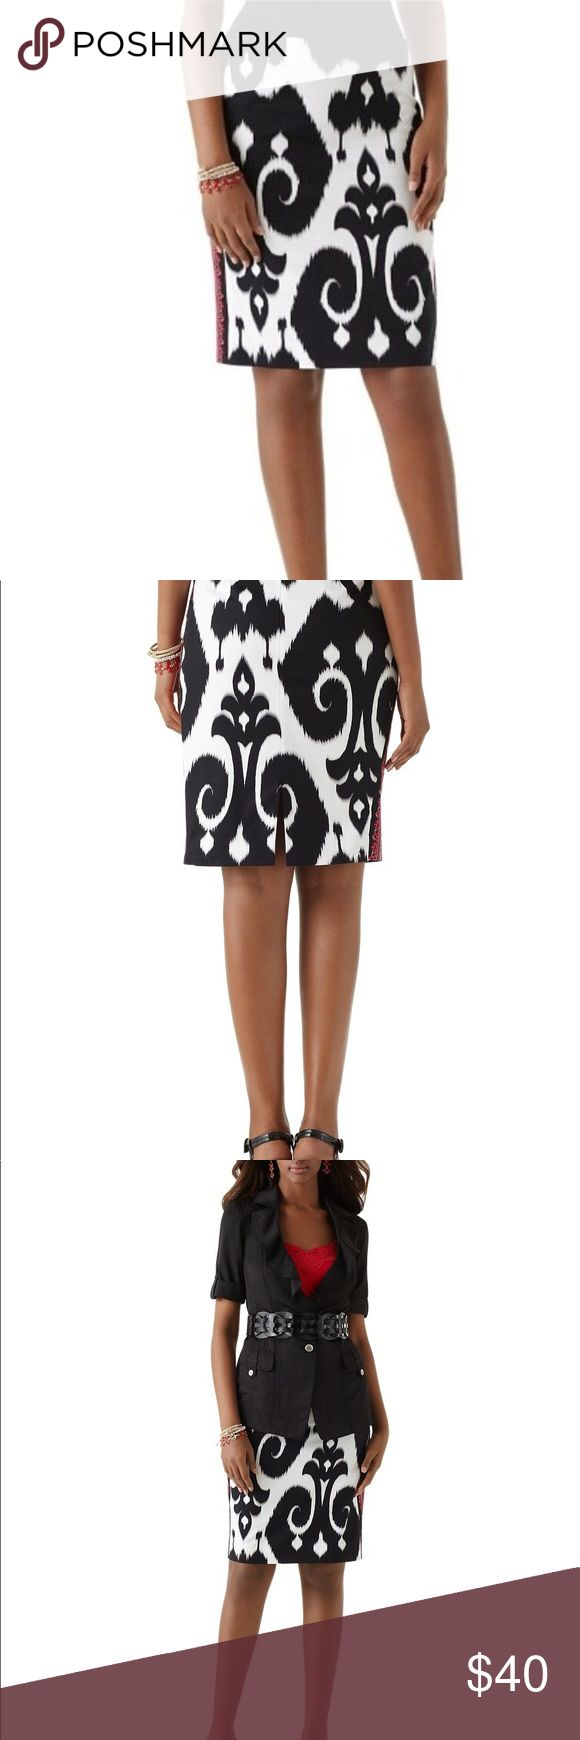 "White House Black Market Ikat Pencil Skirt Size 12 Flame red and Blossom pink embroidered trim on the sides accentuates the slimness of a pencil skirt, bringing the boldness of this black and white ikat print into line. 97% Cotton, 3% Spandex. Machine wash.  Sits below the waist. Bandless waist. Concealed back zip and hip darts. 5.25"" bar-tacked vent. Soft, lightweight thread-tacked lining. Length: 20inches. Waist is approximately 18 inches. Size 12. Worn twice. White House Black Market…"